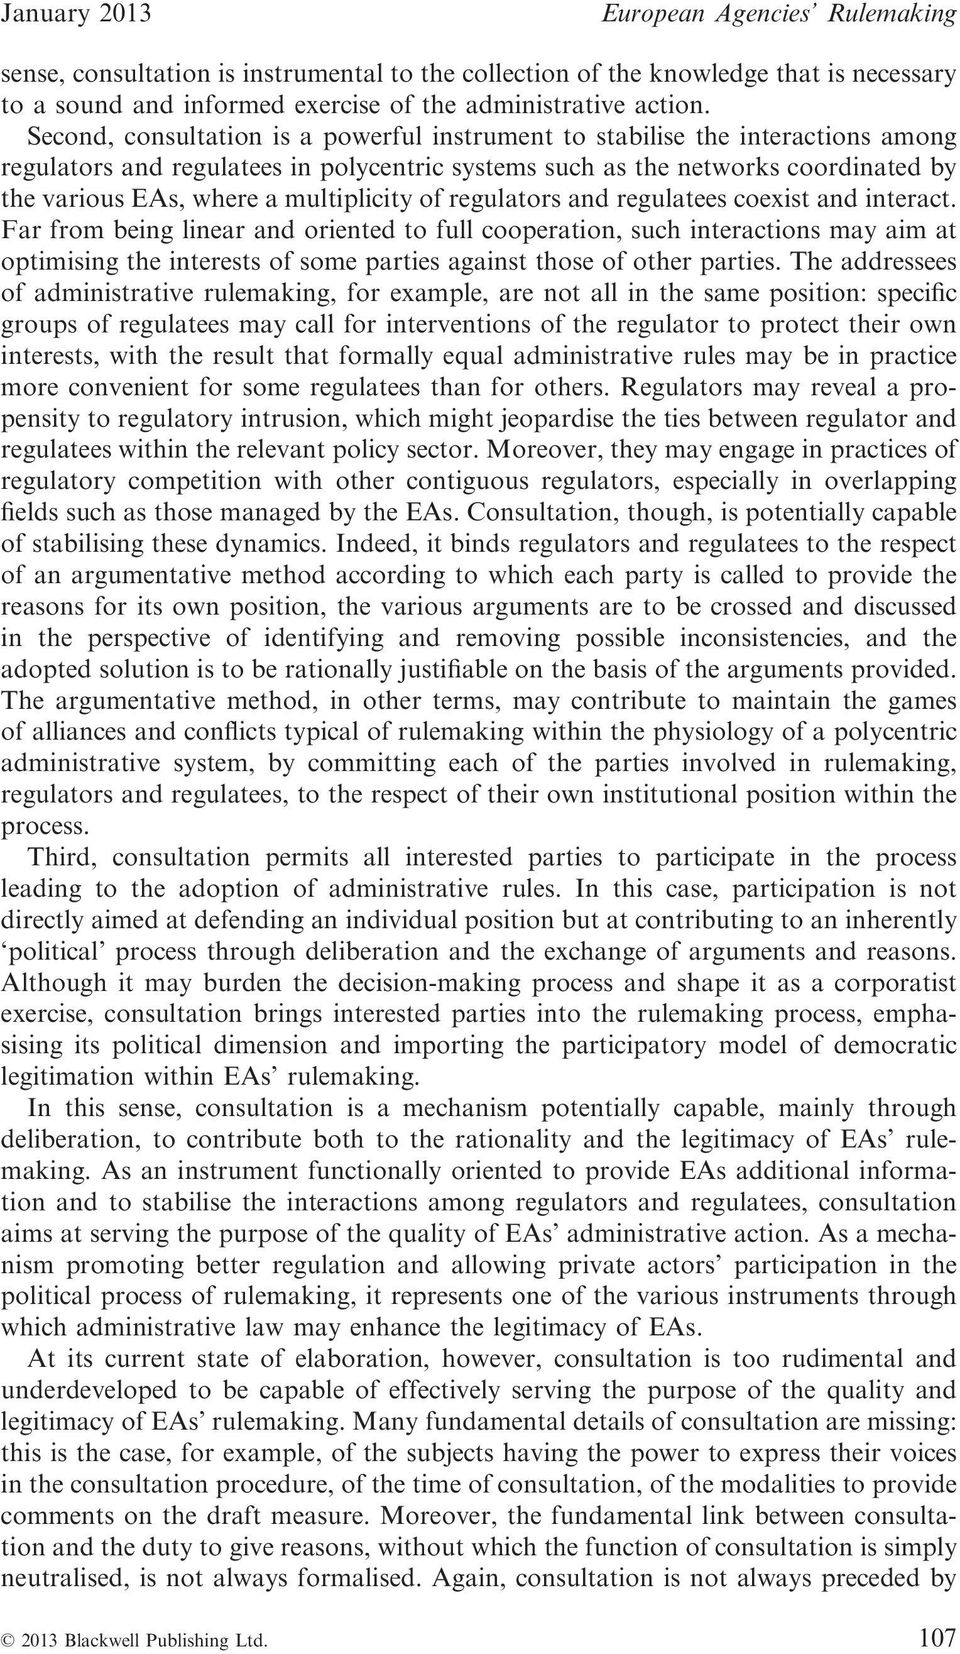 multiplicity of regulators and regulatees coexist and interact.